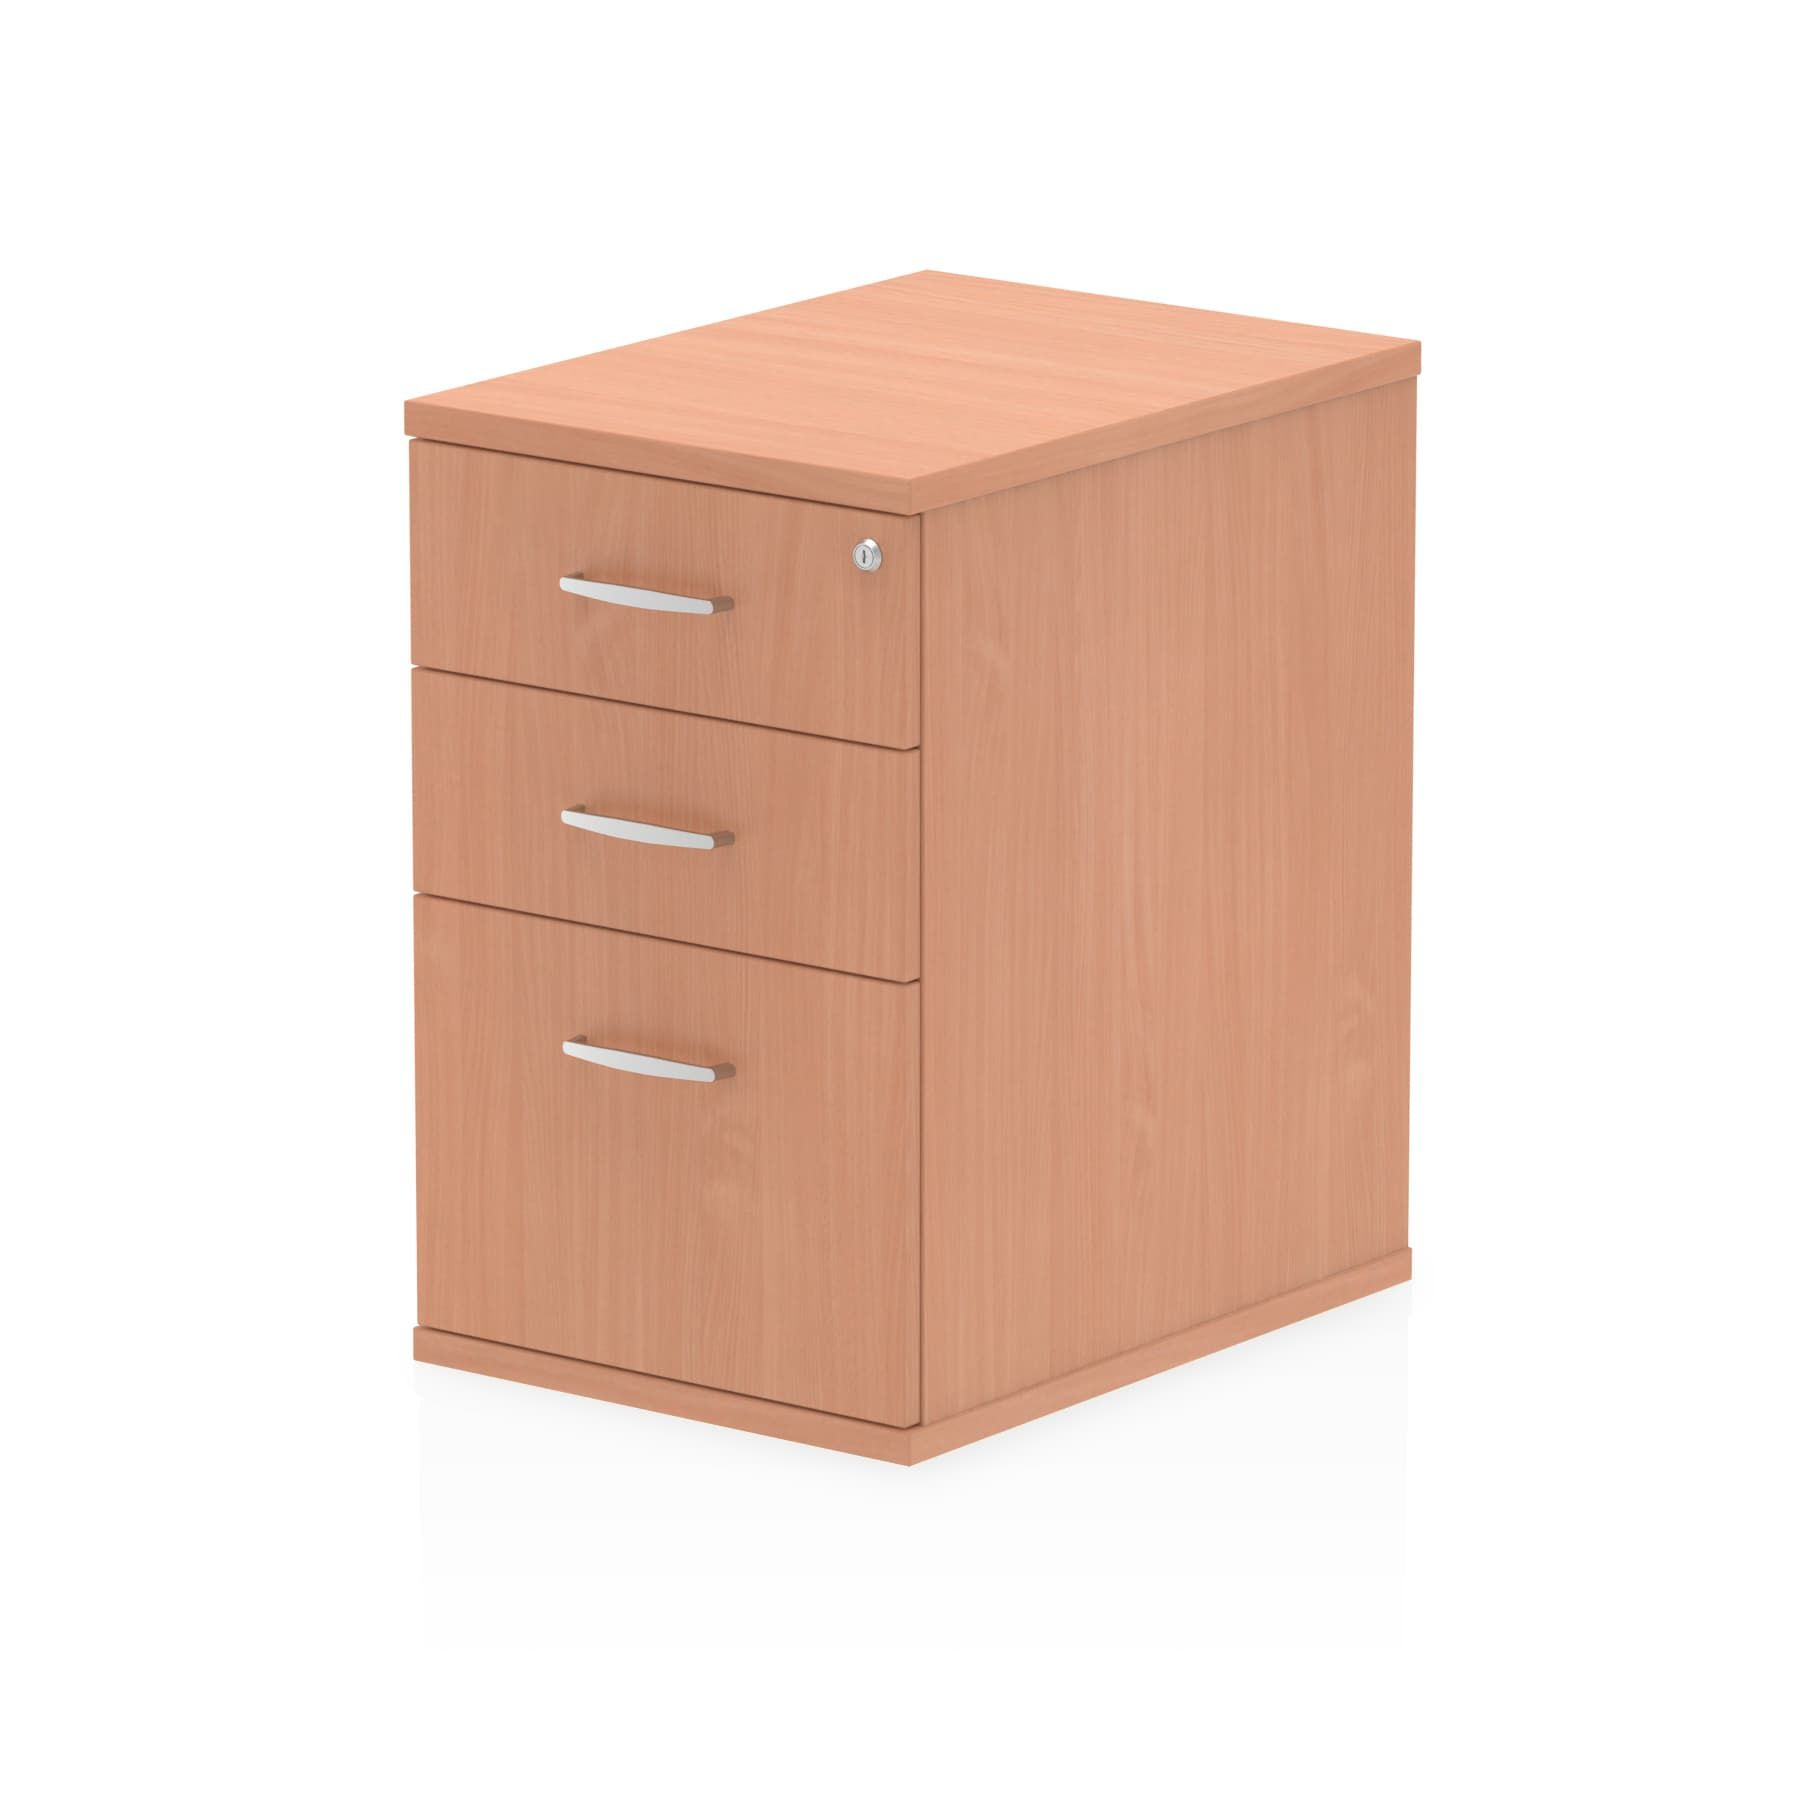 Impulse Desk High Pedestal 3 Drawer 600 Depth with 730mm Height